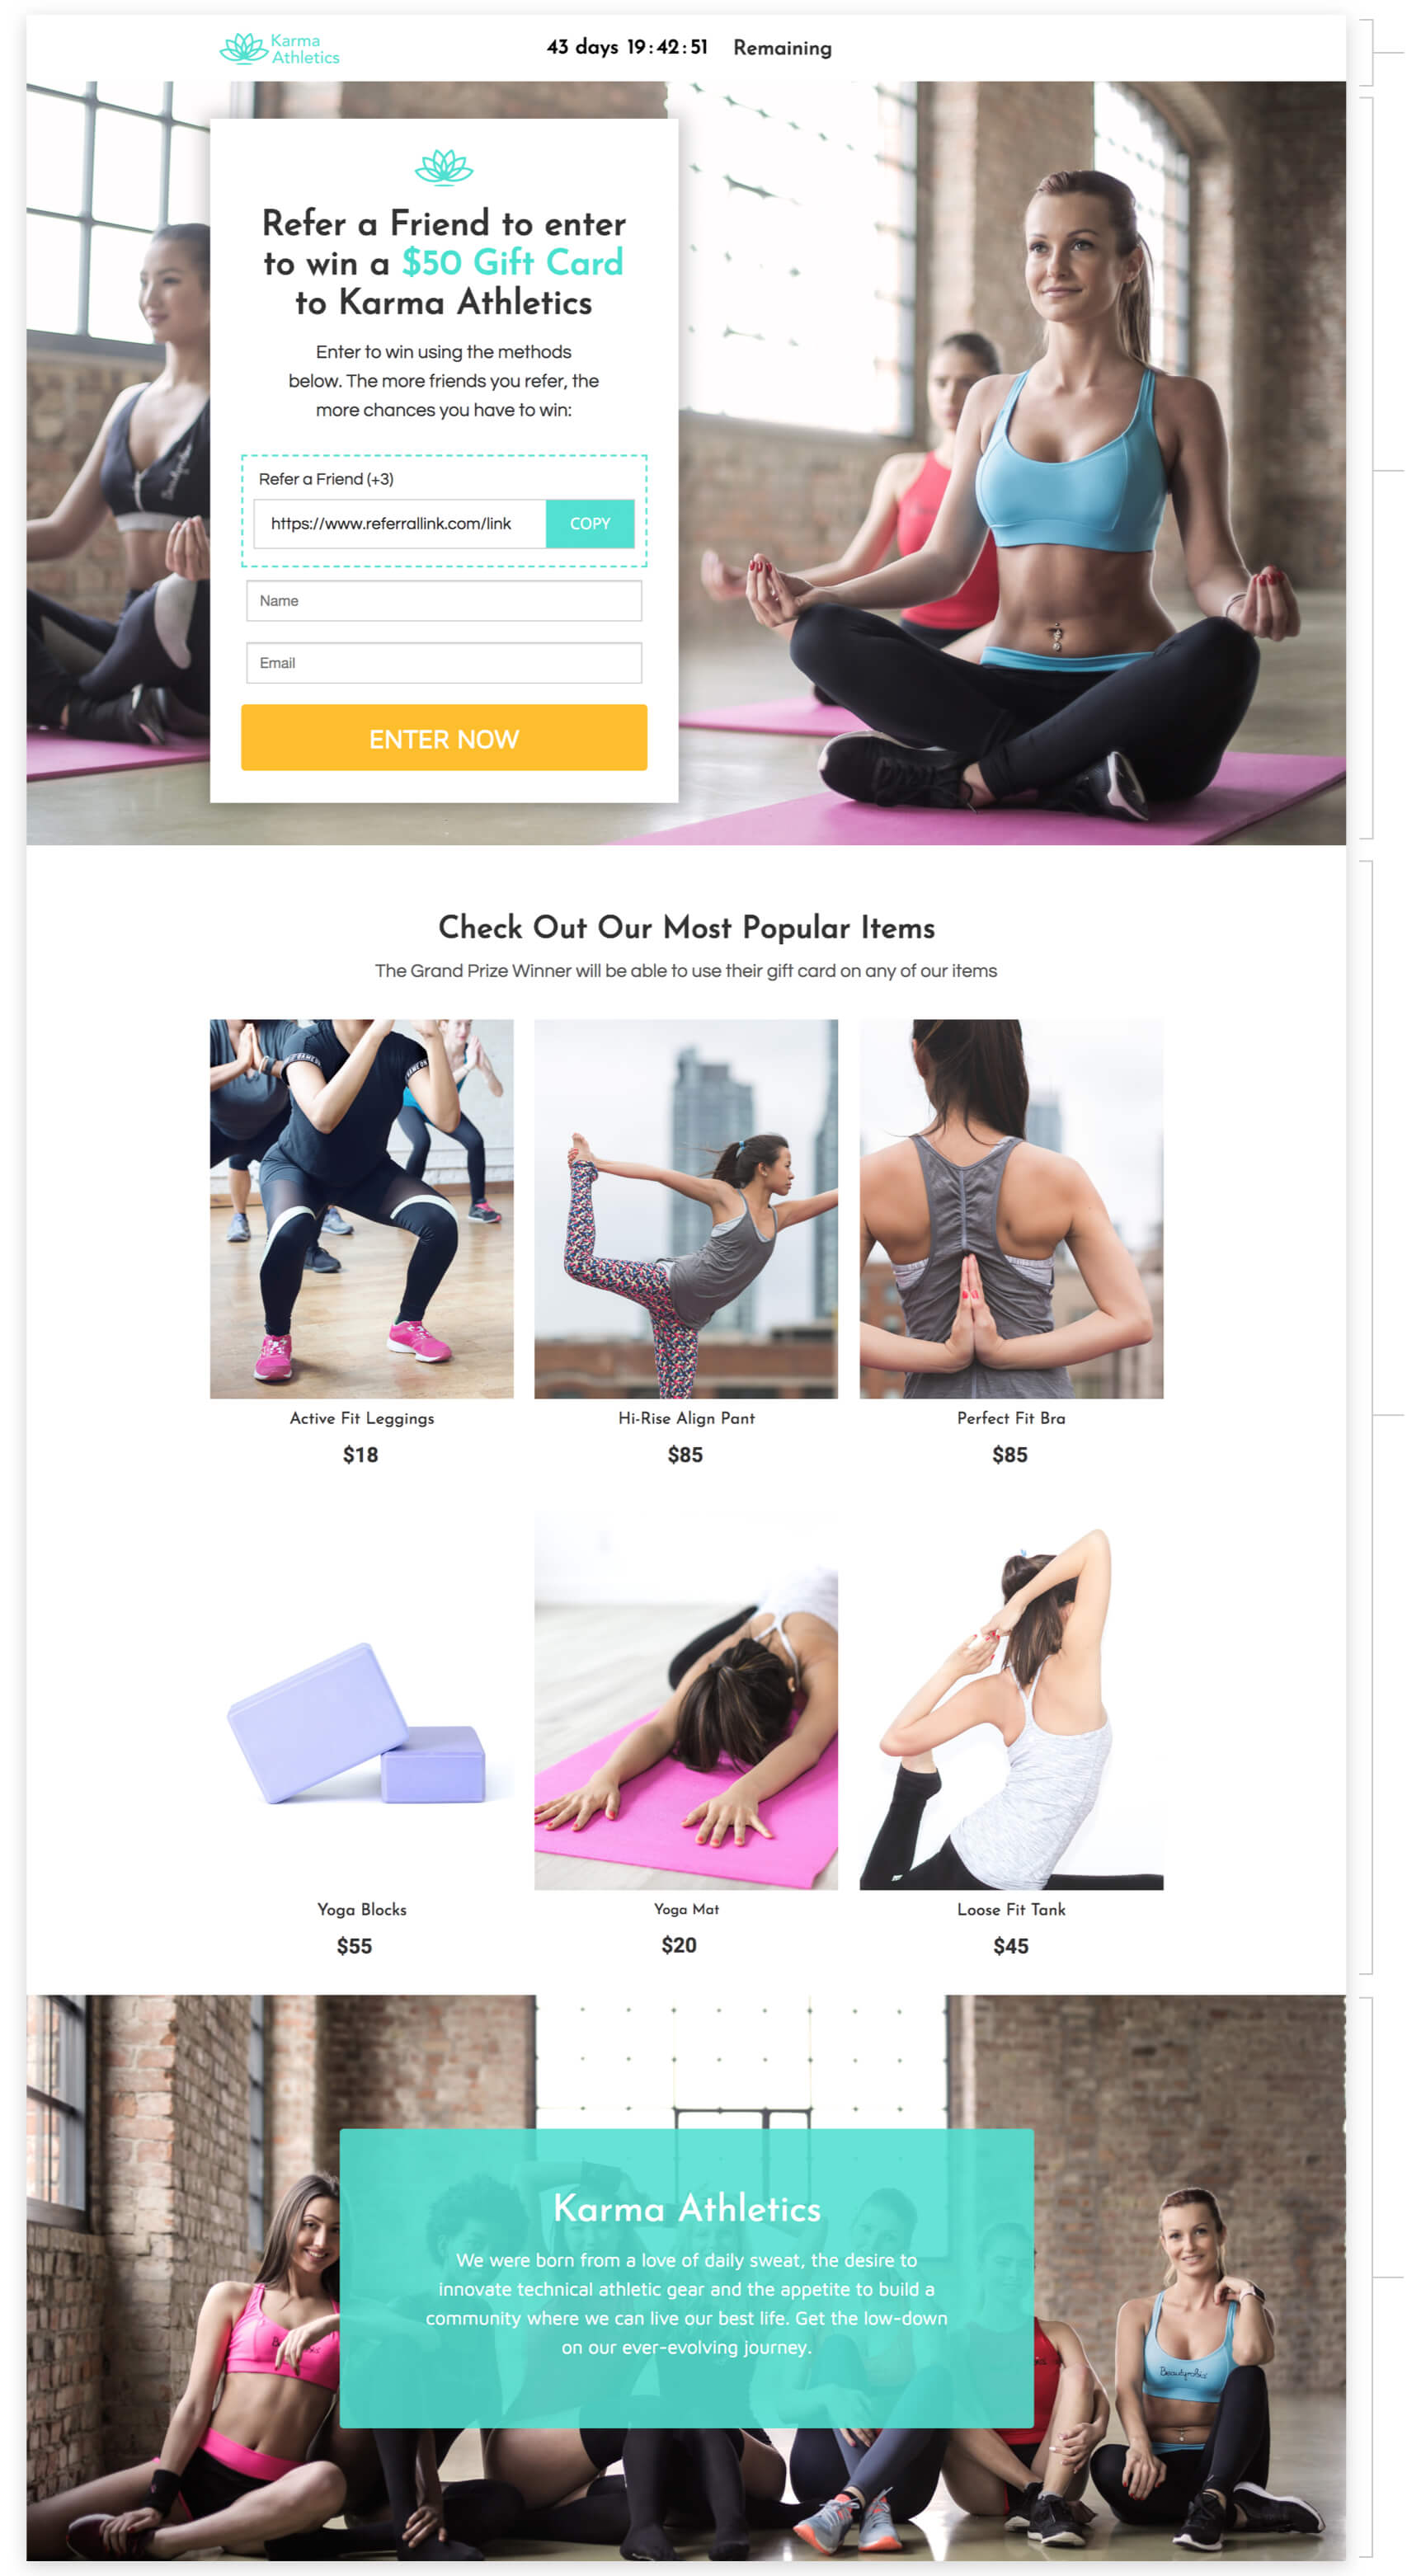 Ecommerce Refer-a-Friend Contest landing page